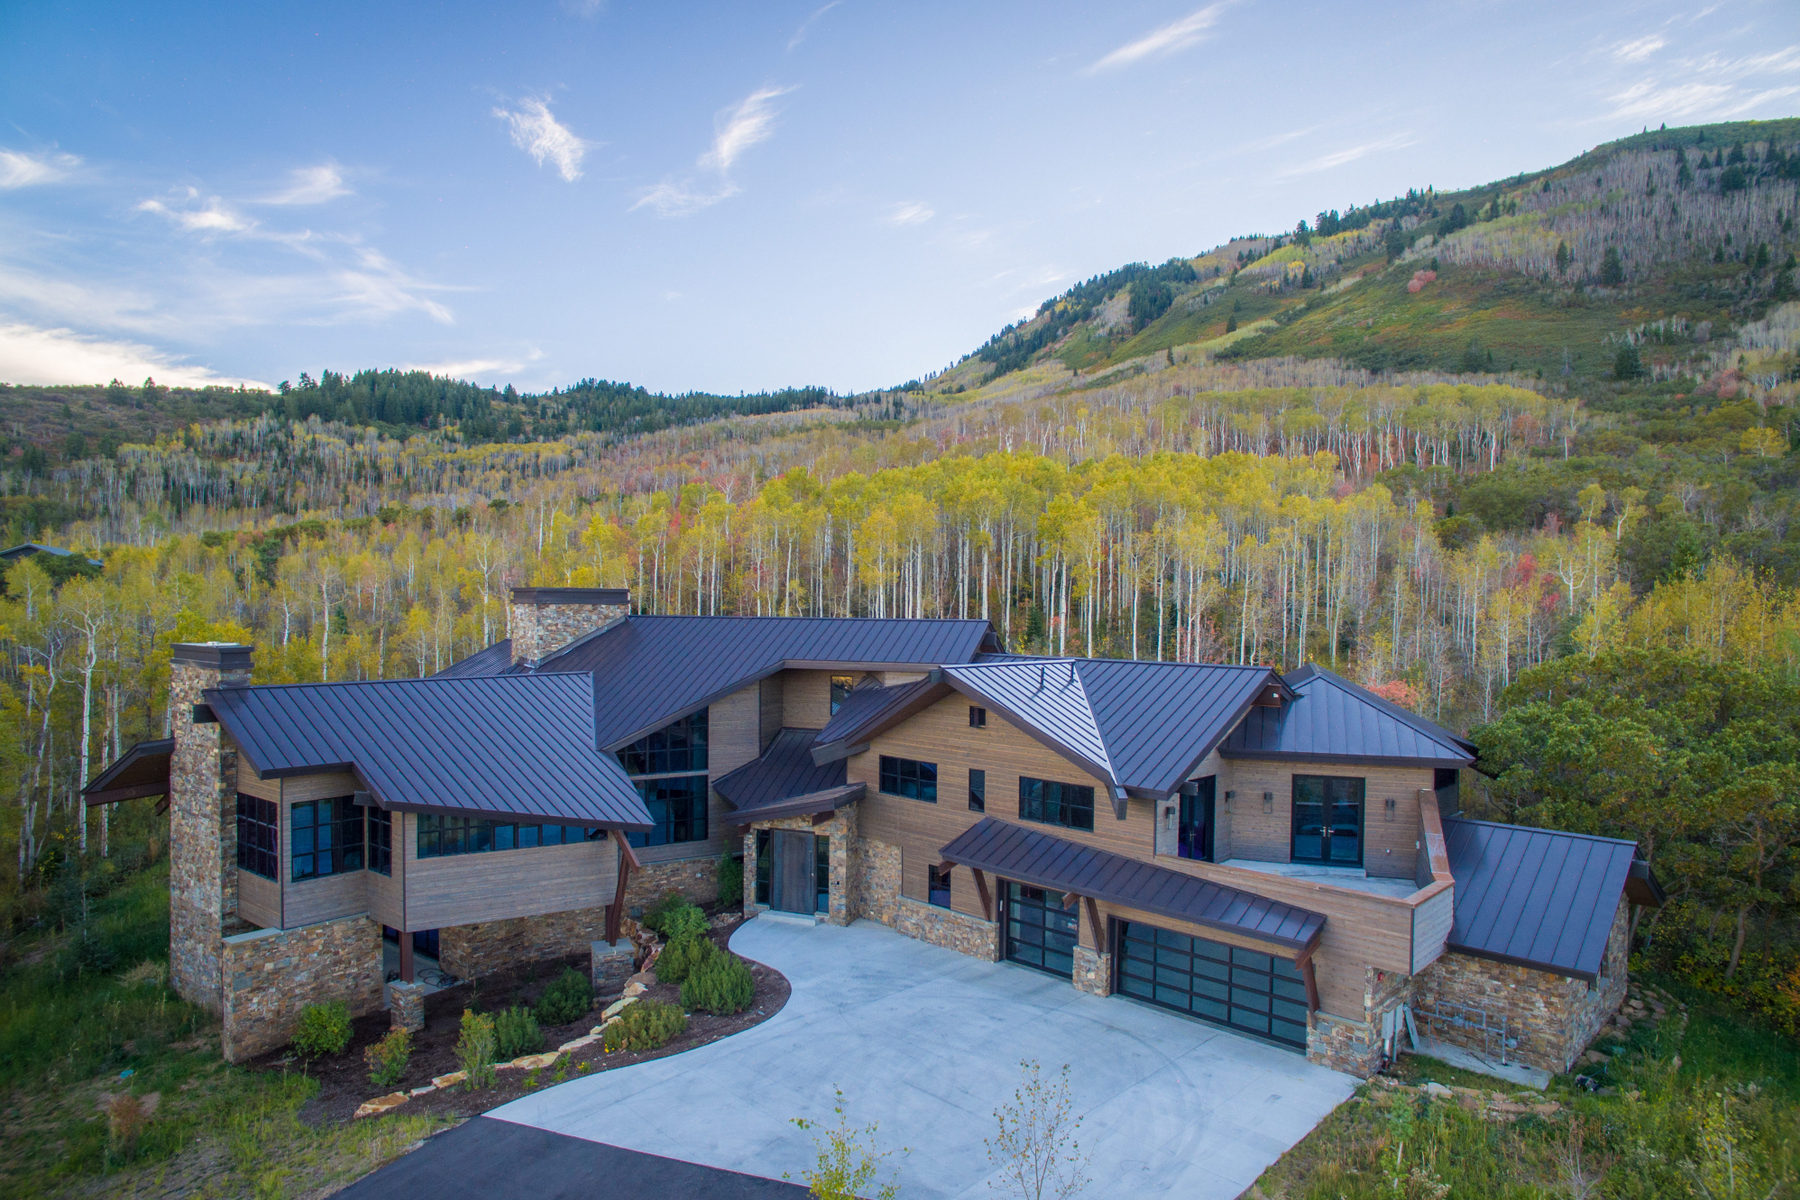 独户住宅 为 销售 在 Newly Finished Mountain Contemporary Masterpiece 21 Canyon Ct Park City, Utah, 84060 United States